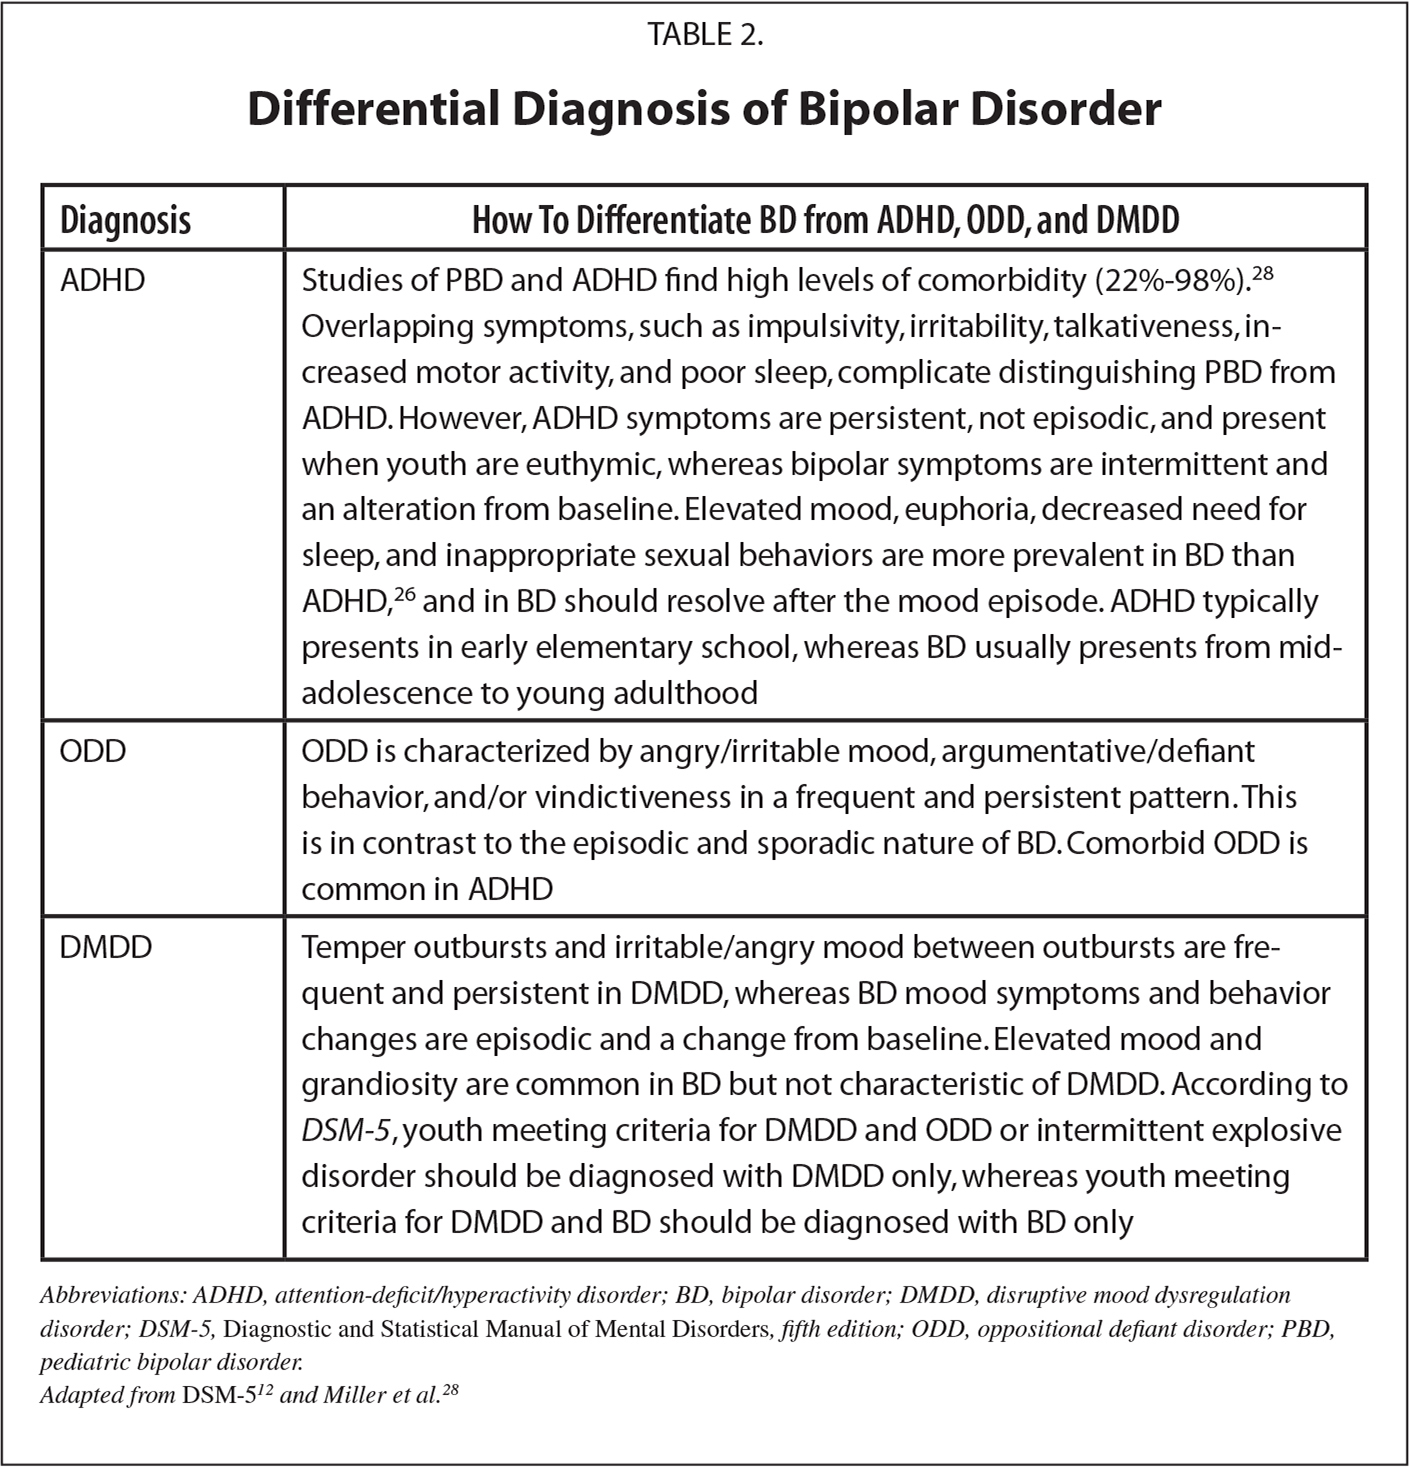 Differential Diagnosis of Bipolar Disorder